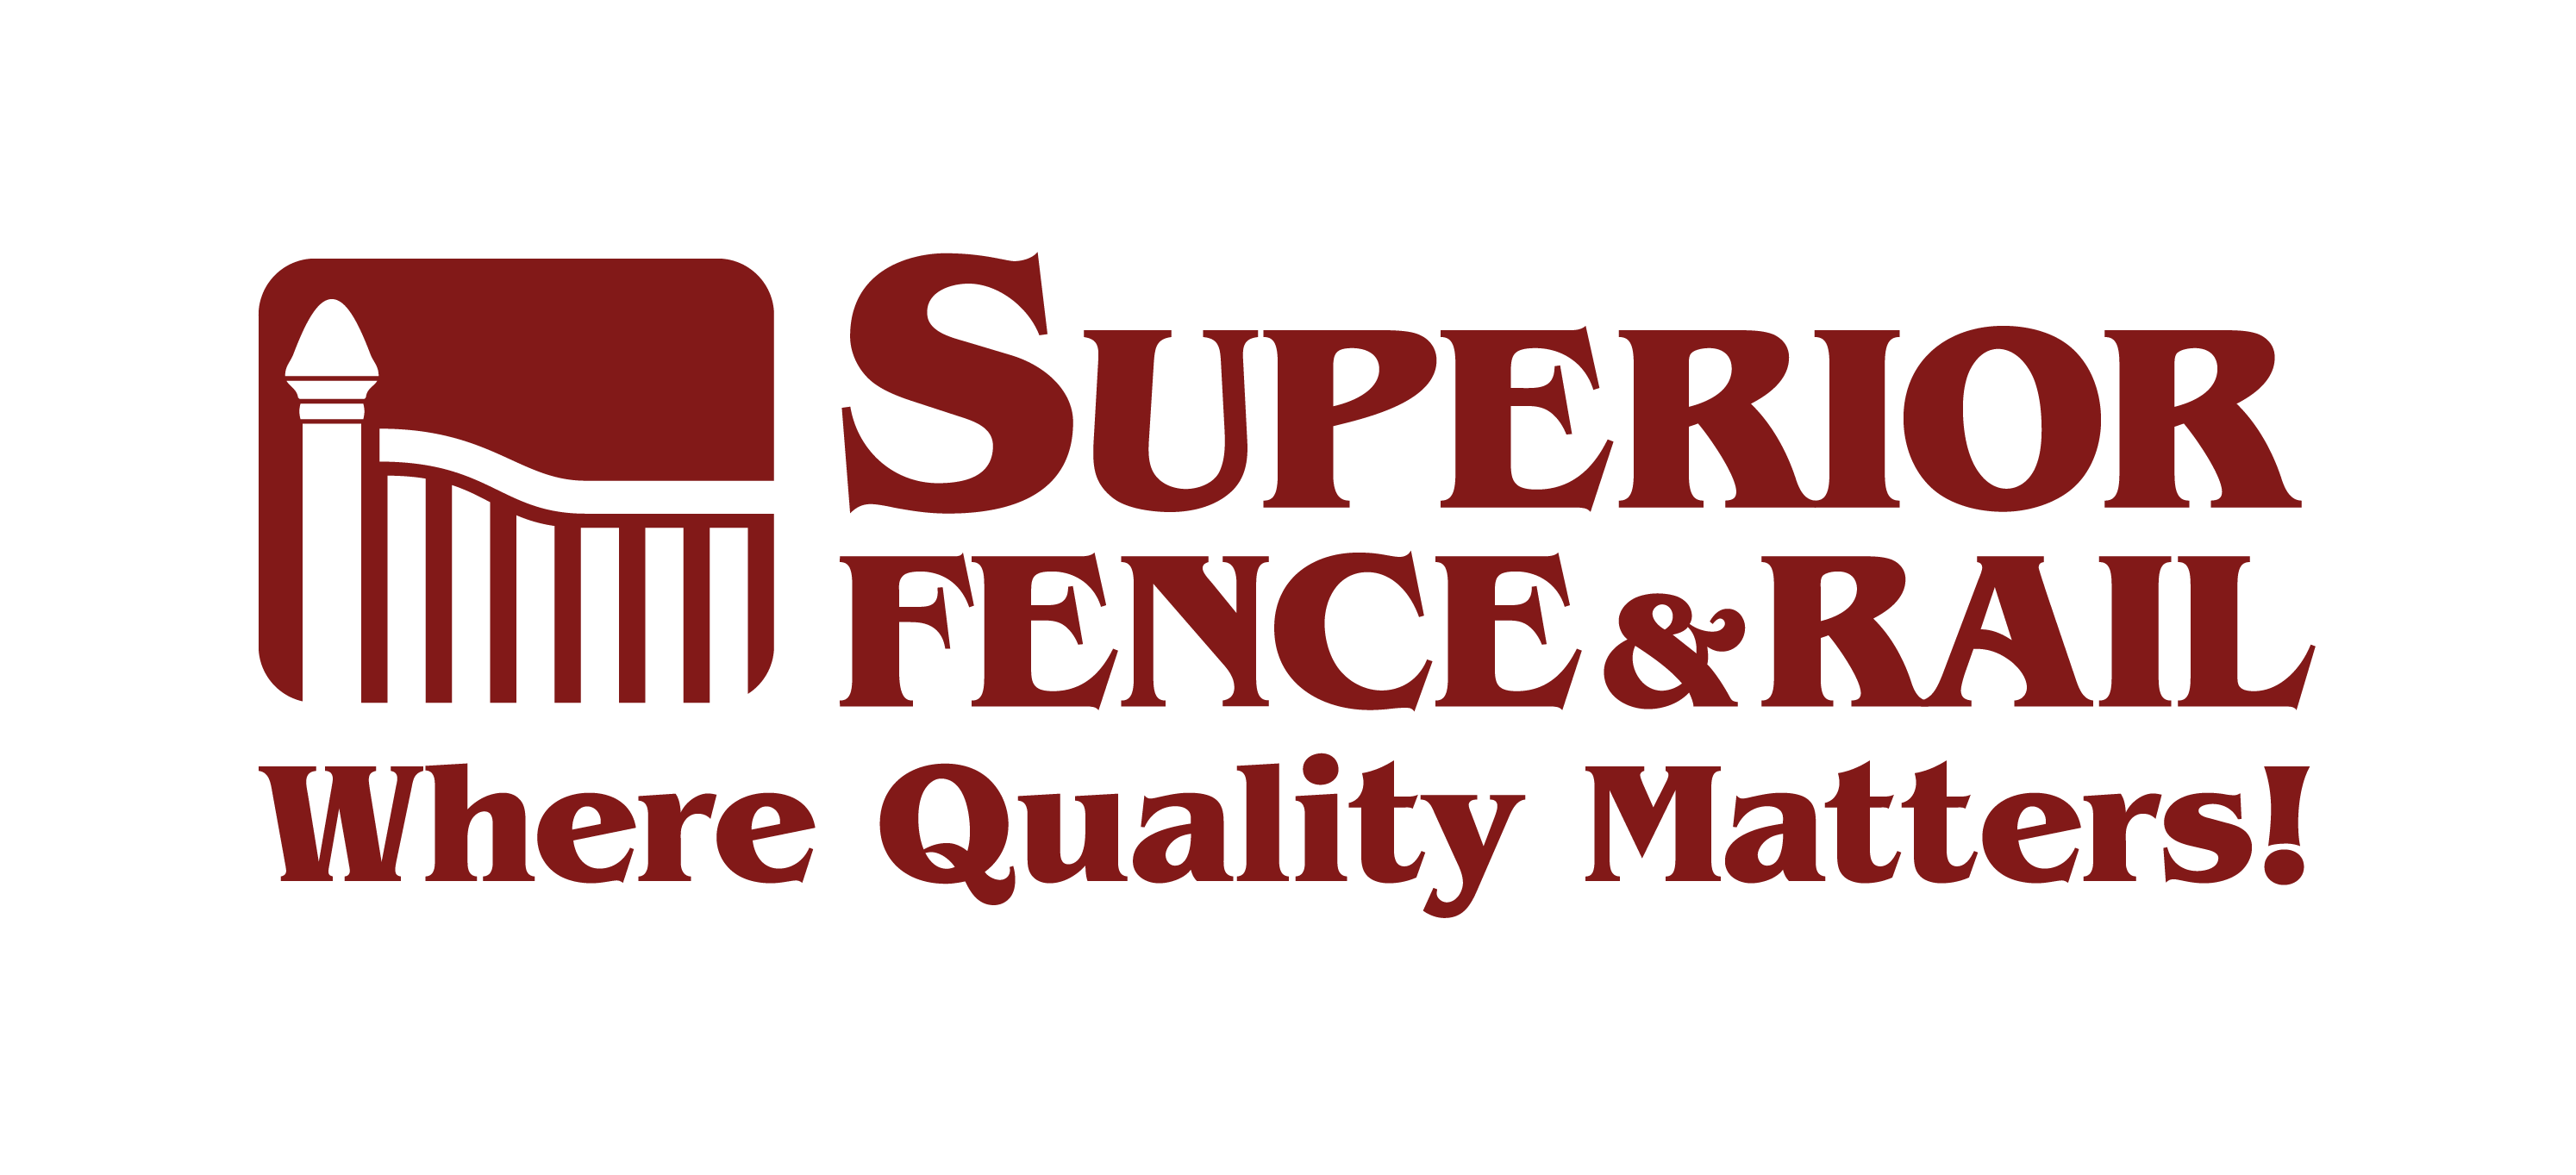 Integrity, Ingenuity and Collaboration Appeal to Superior Fence & Rail's New Richmond VA Fence Franchise Location